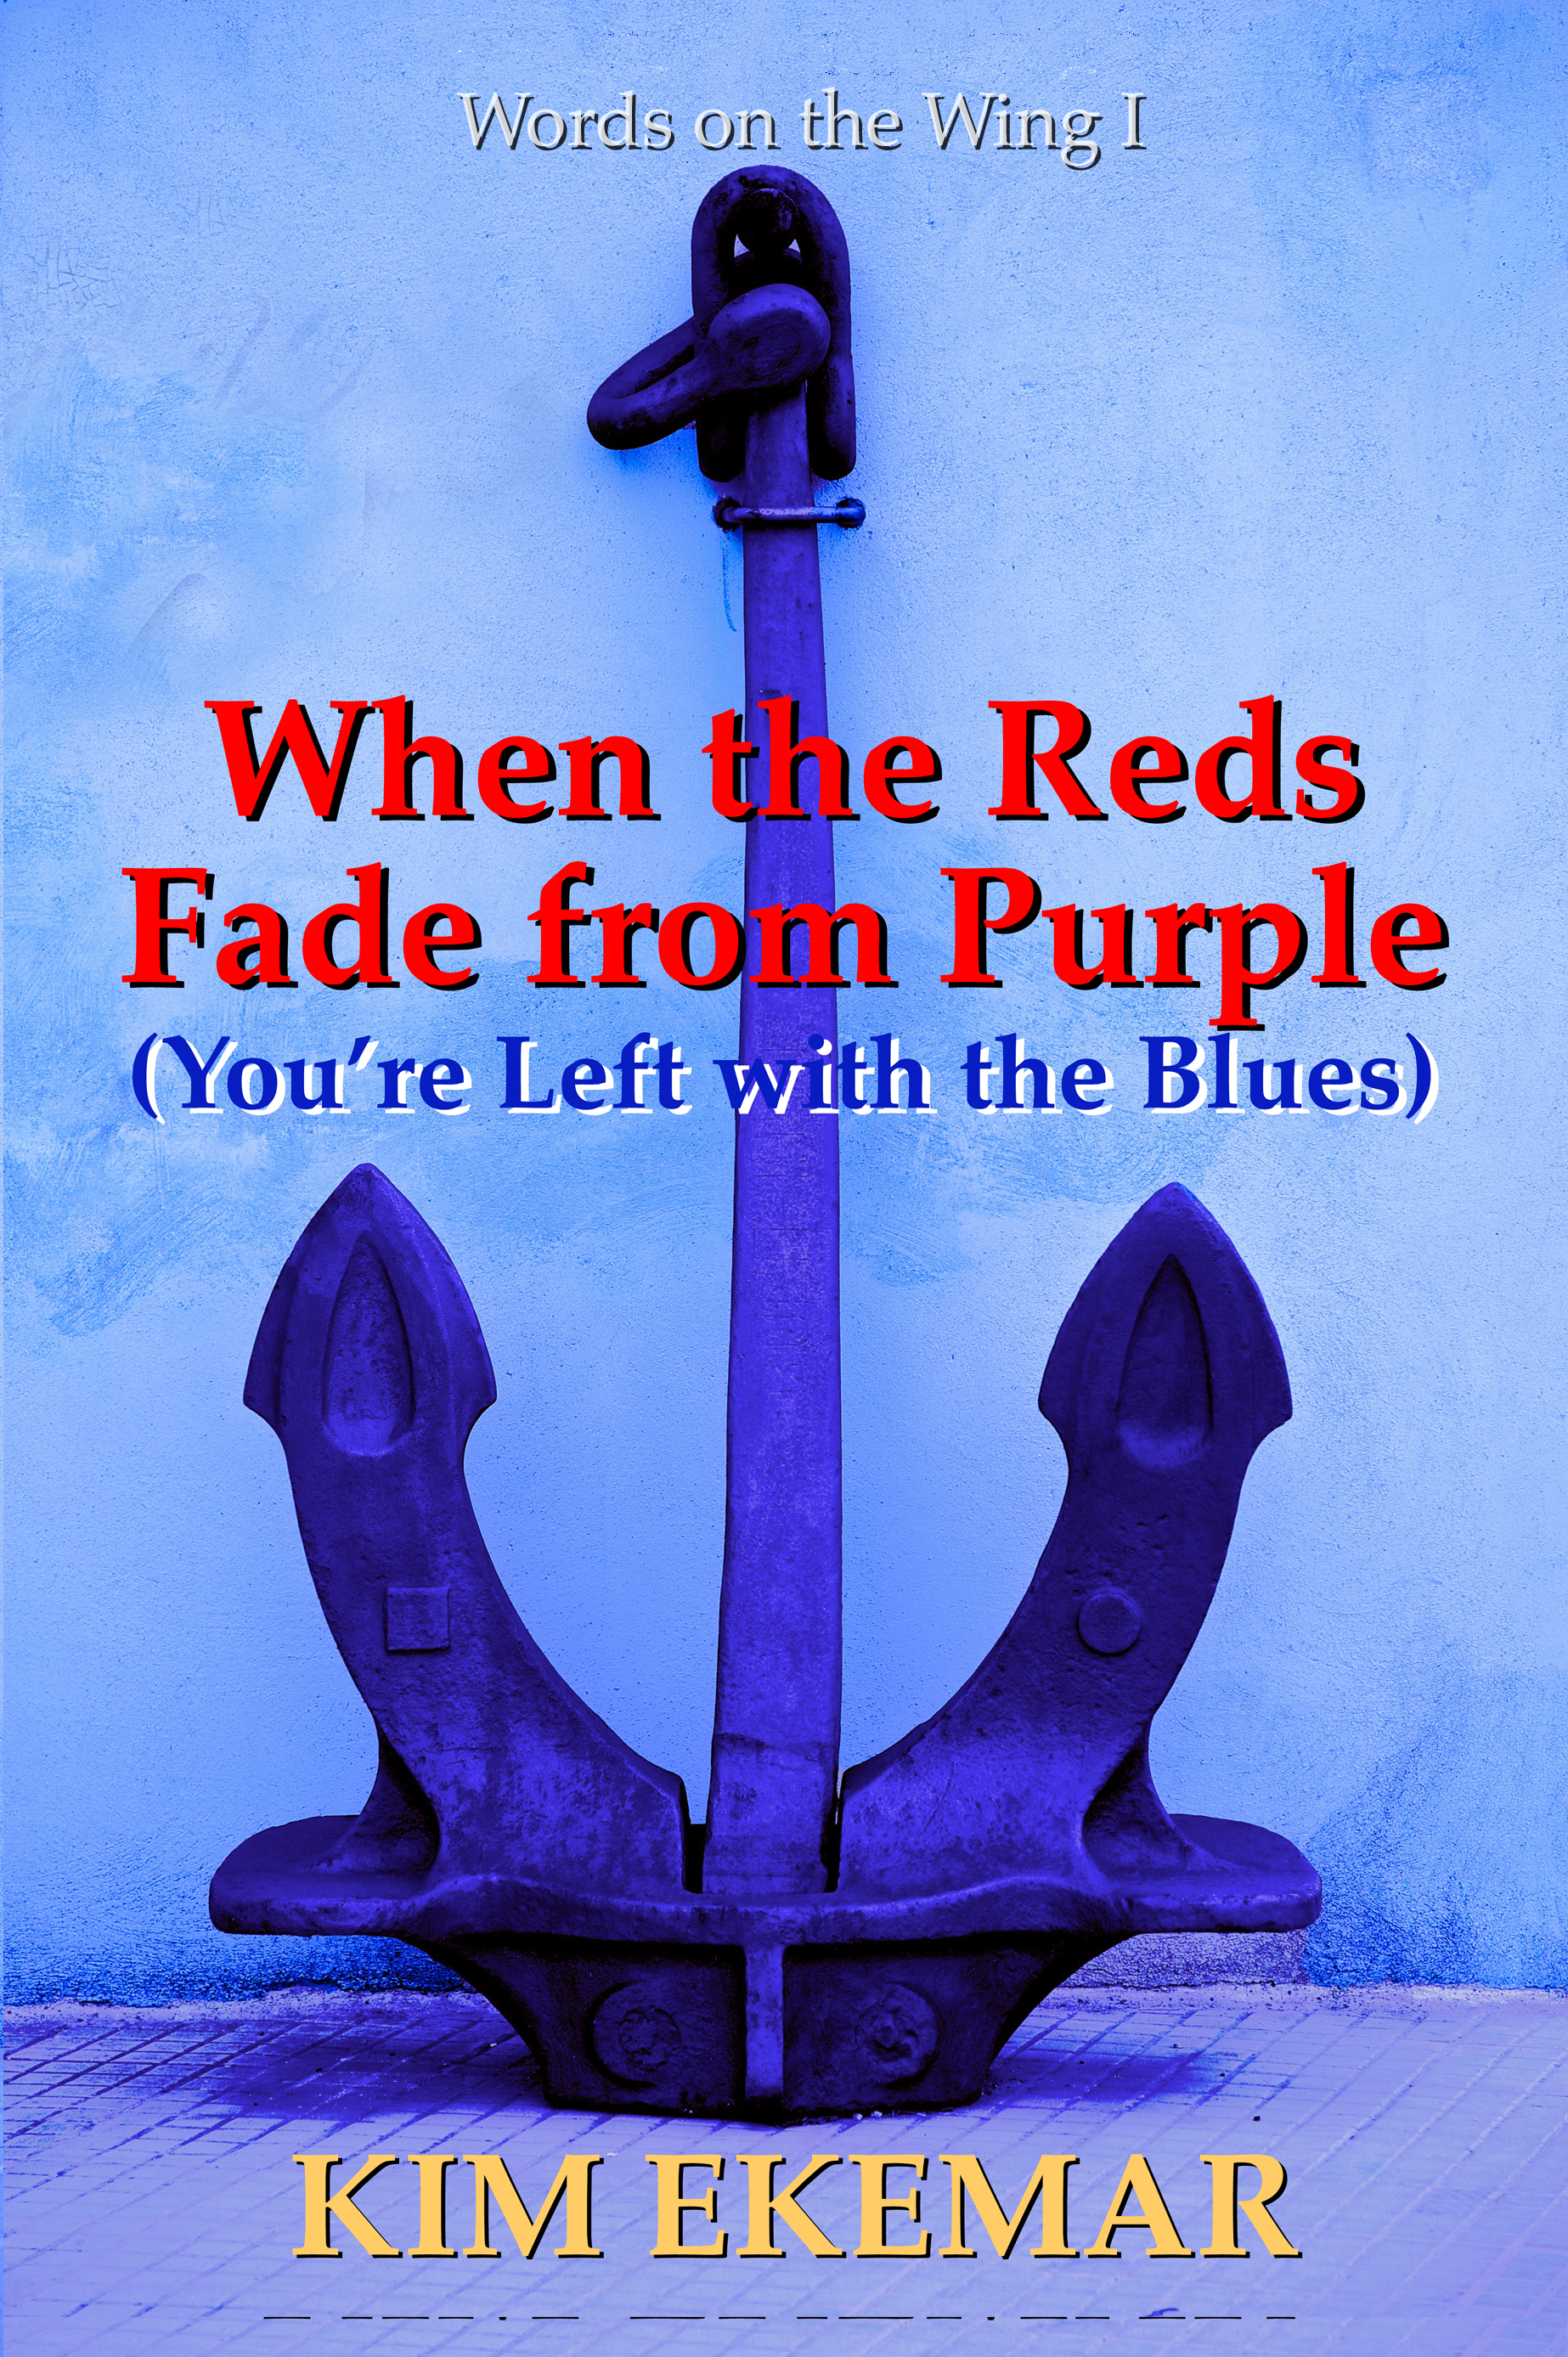 When the Reds Fade from Purple